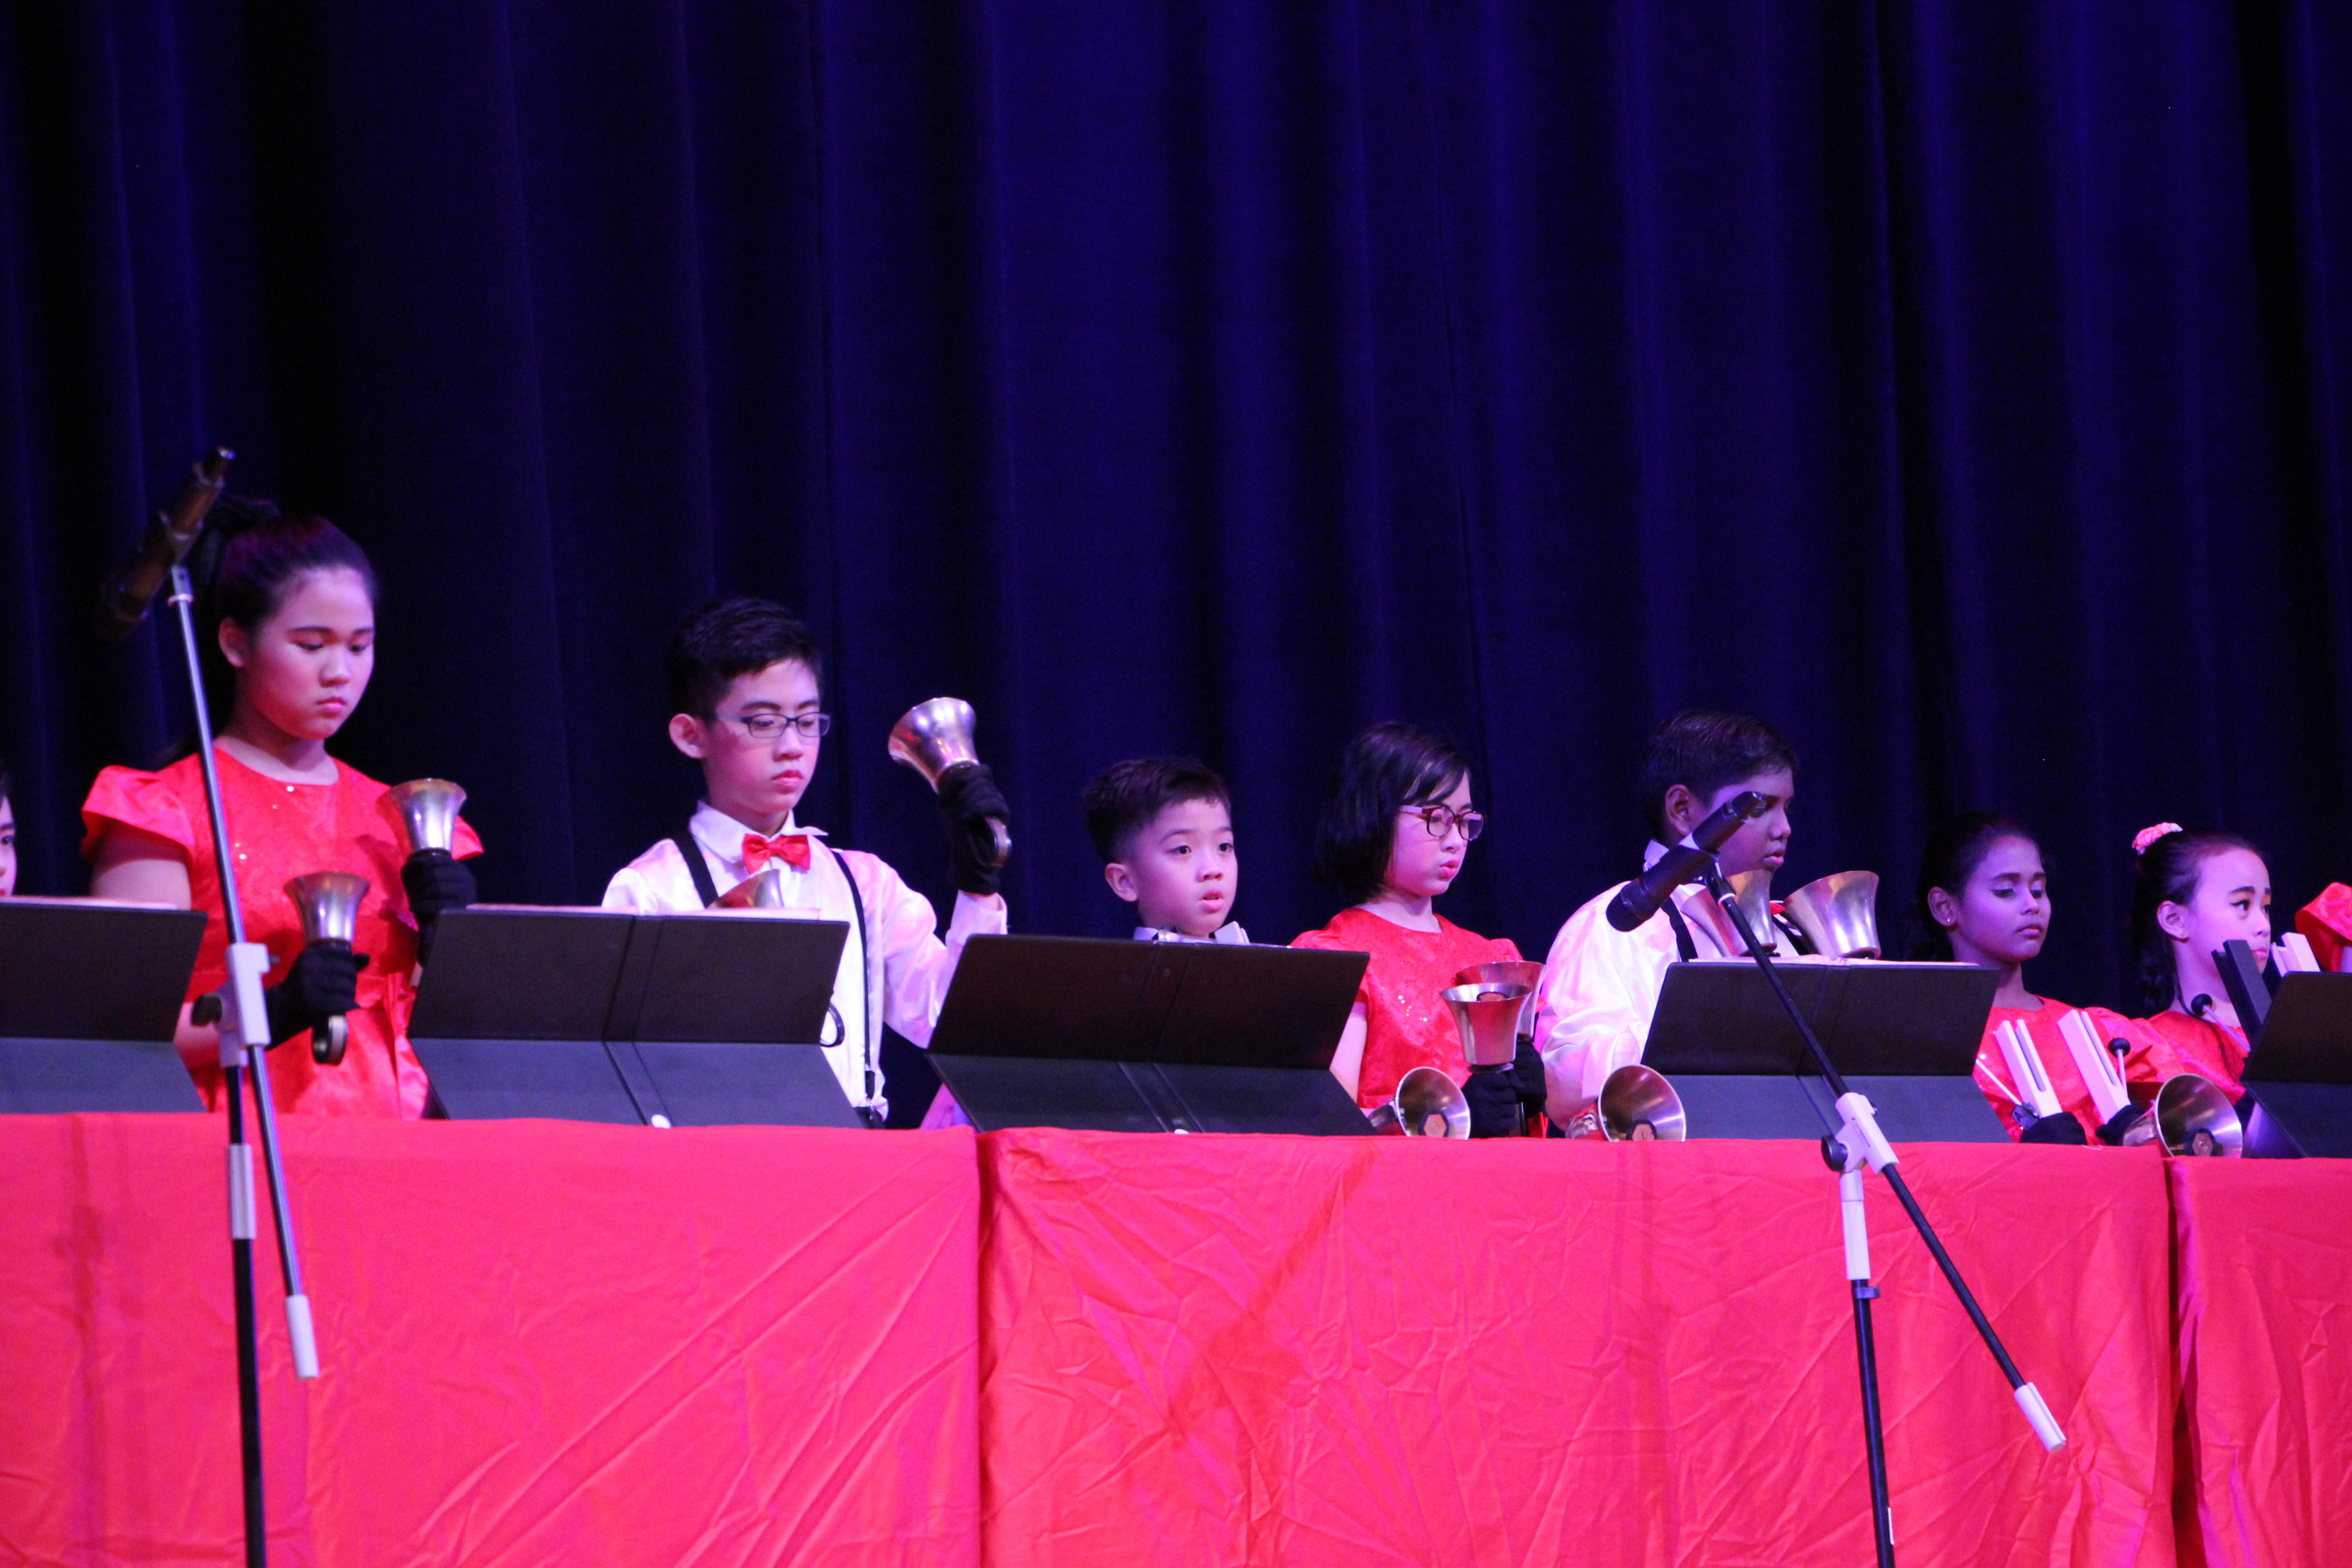 musical 2017 handbells performance